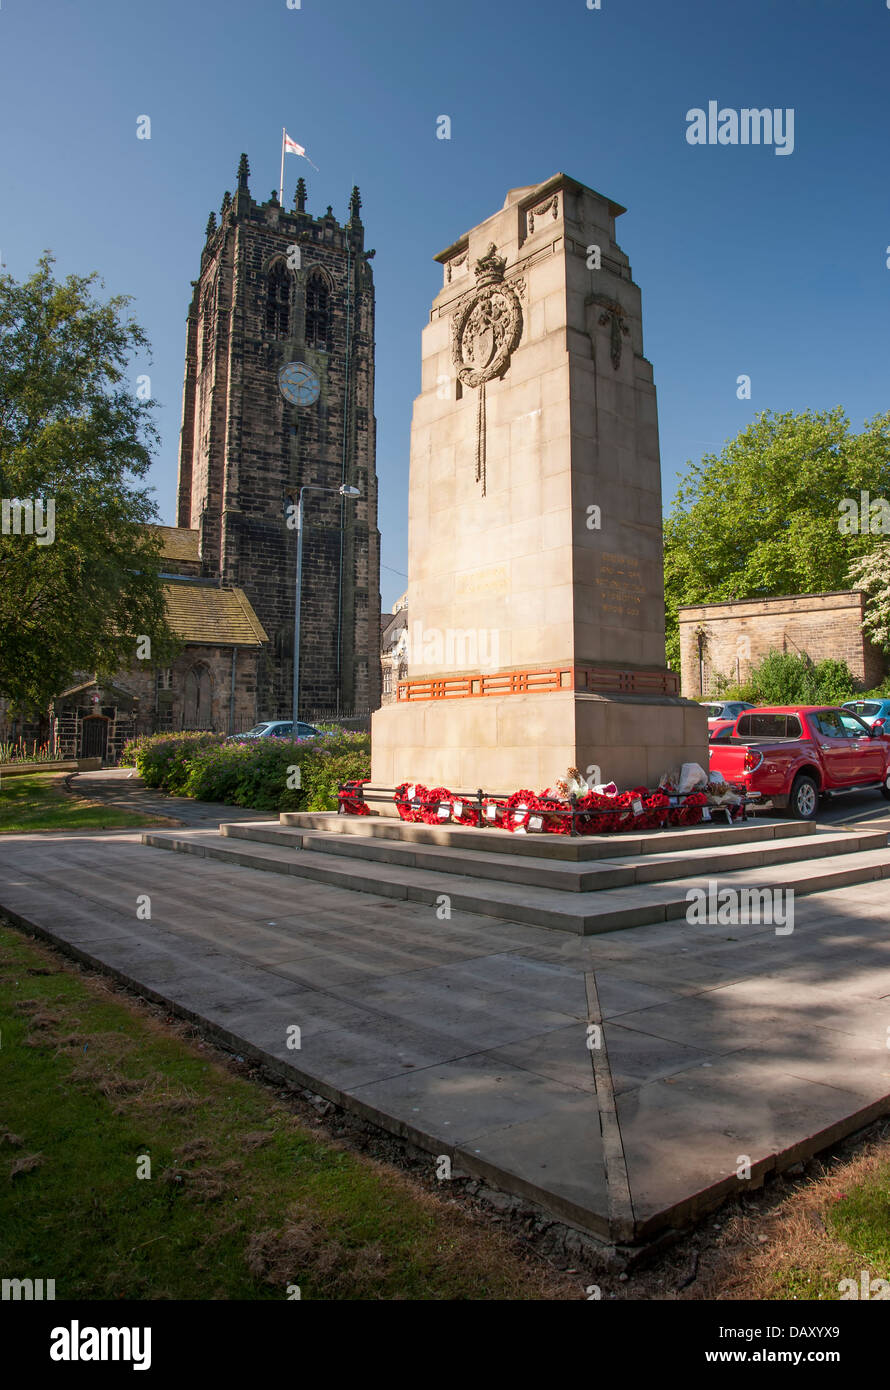 Cenotaph to the fallen outside of Halifax Minster - Stock Image